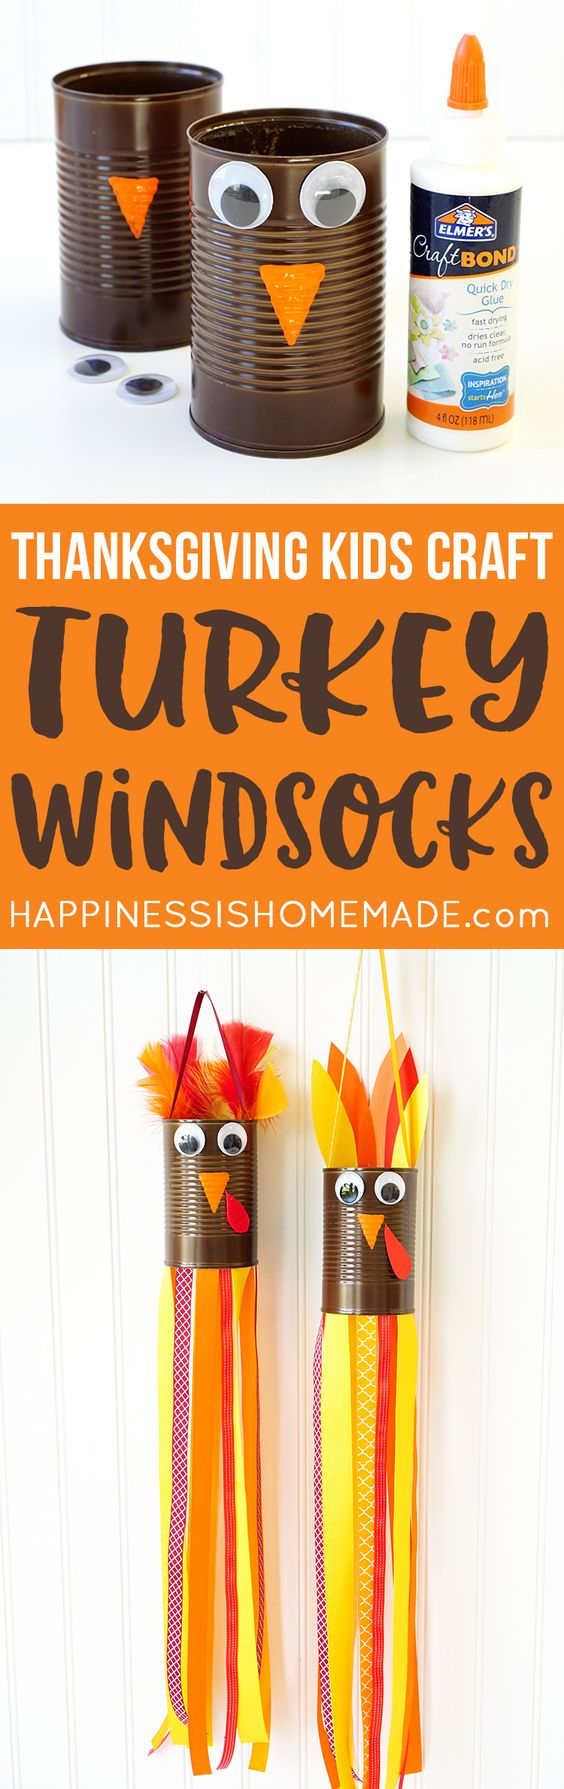 Turkey Windsocks Made From A Recycled Tin Can.